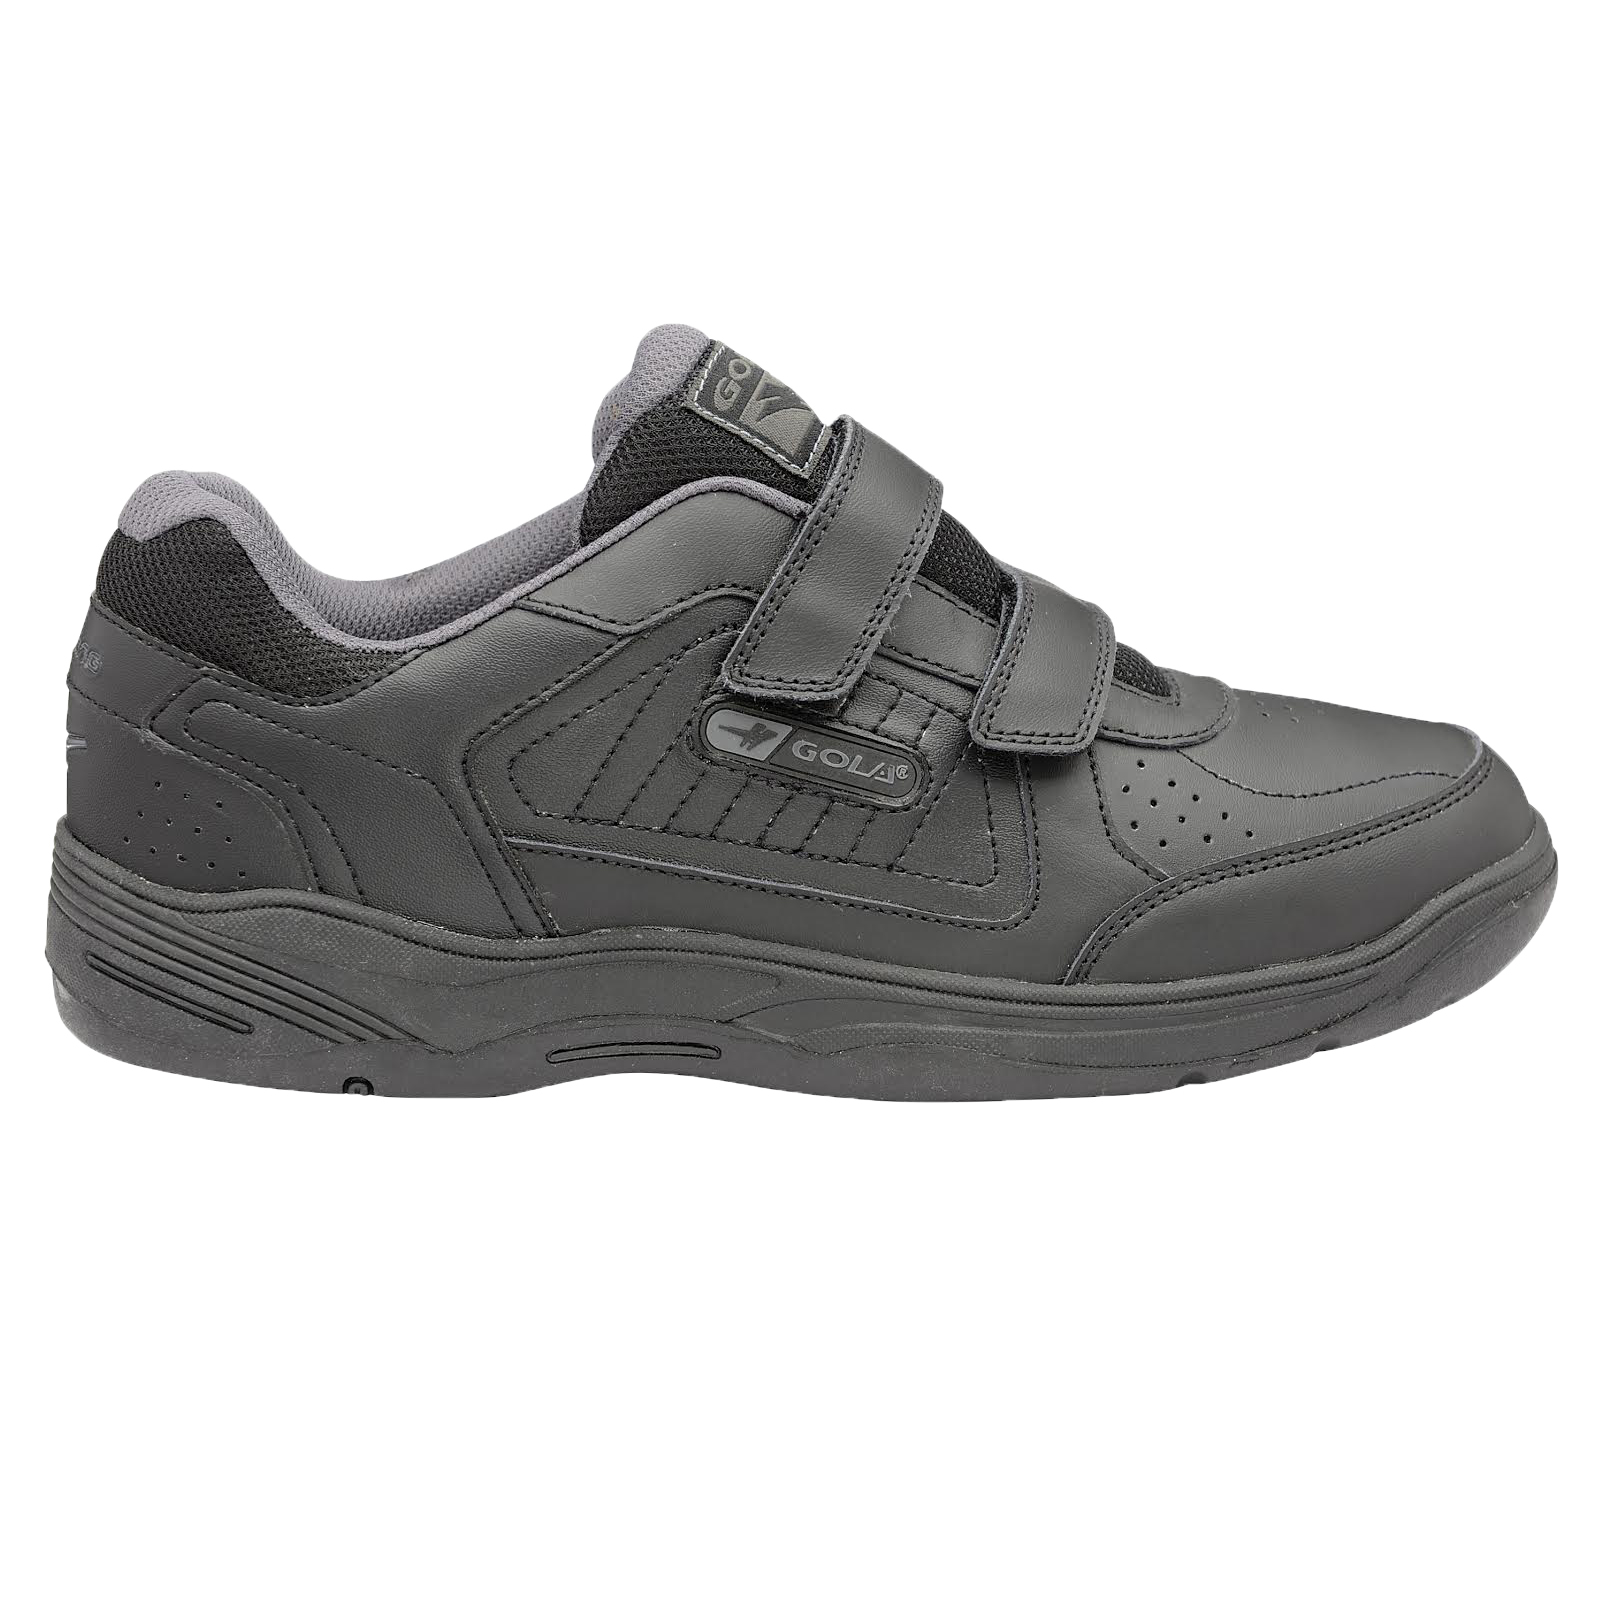 Gola-Belmont-Wide-Fit-EE-Mens-Leather-Or-Suede-Trainers-Size-7-15-UK-Touch-Strap thumbnail 3